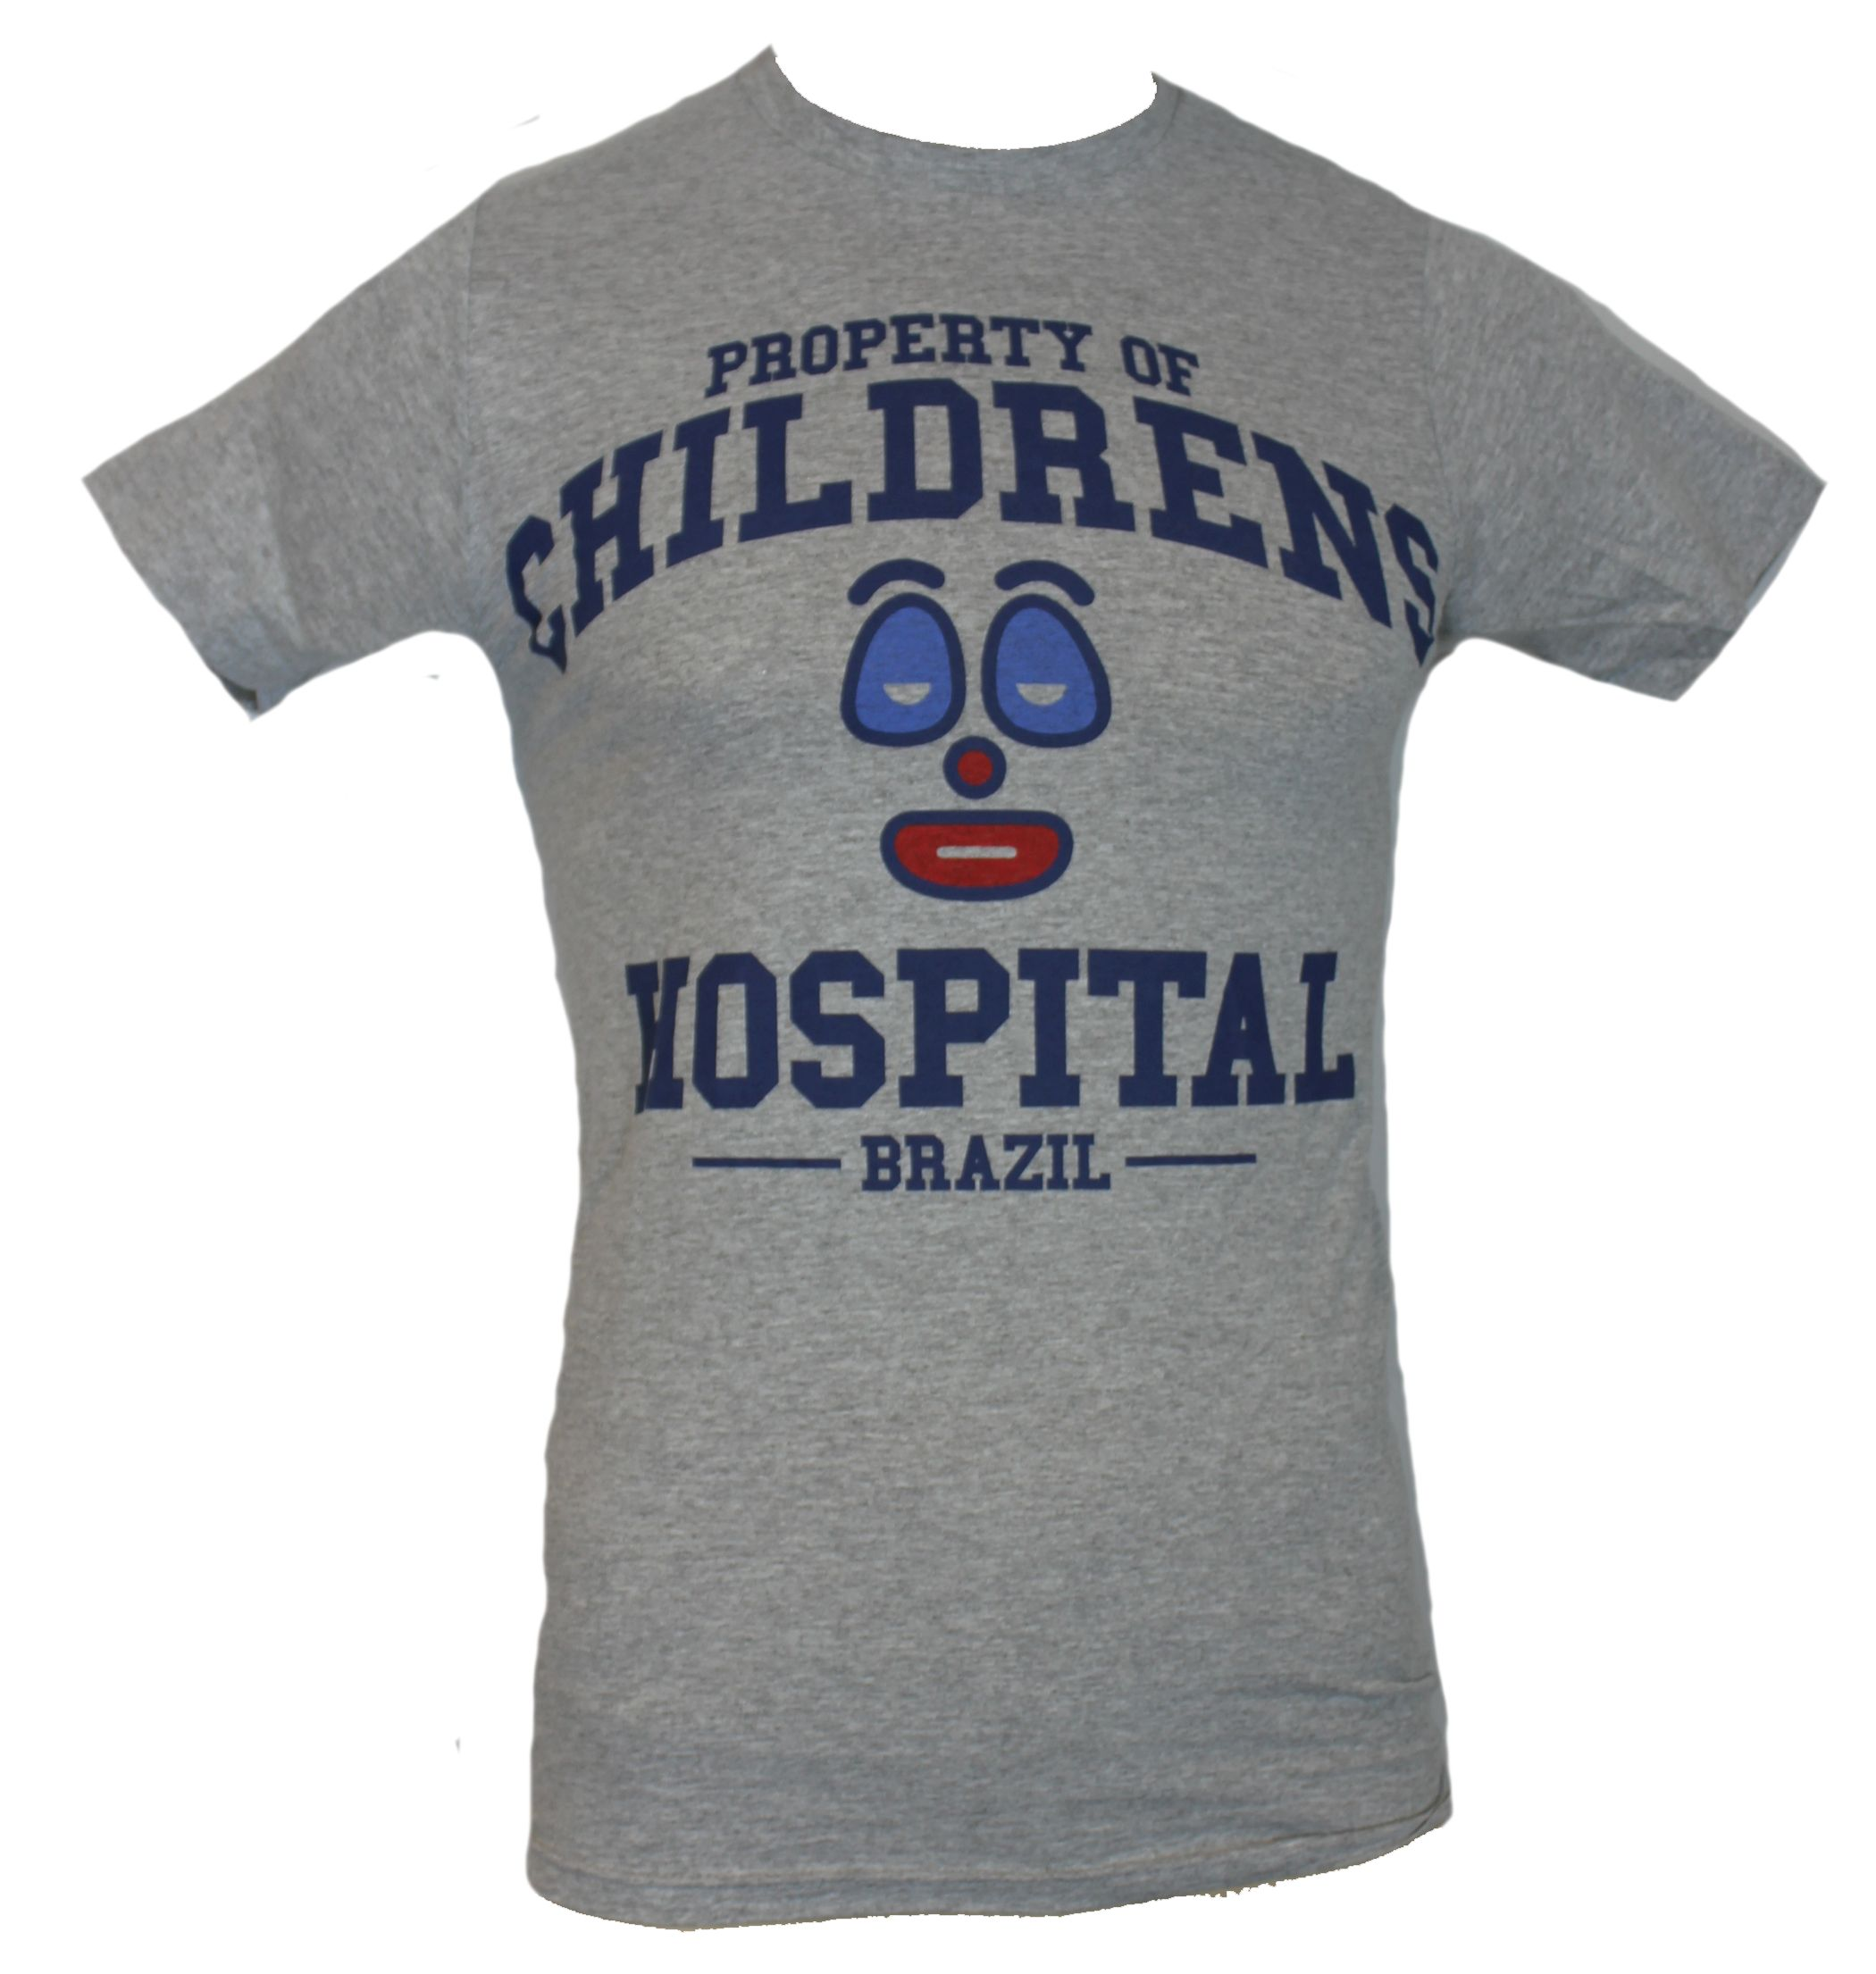 ChildrensHospitalBrazilProperty